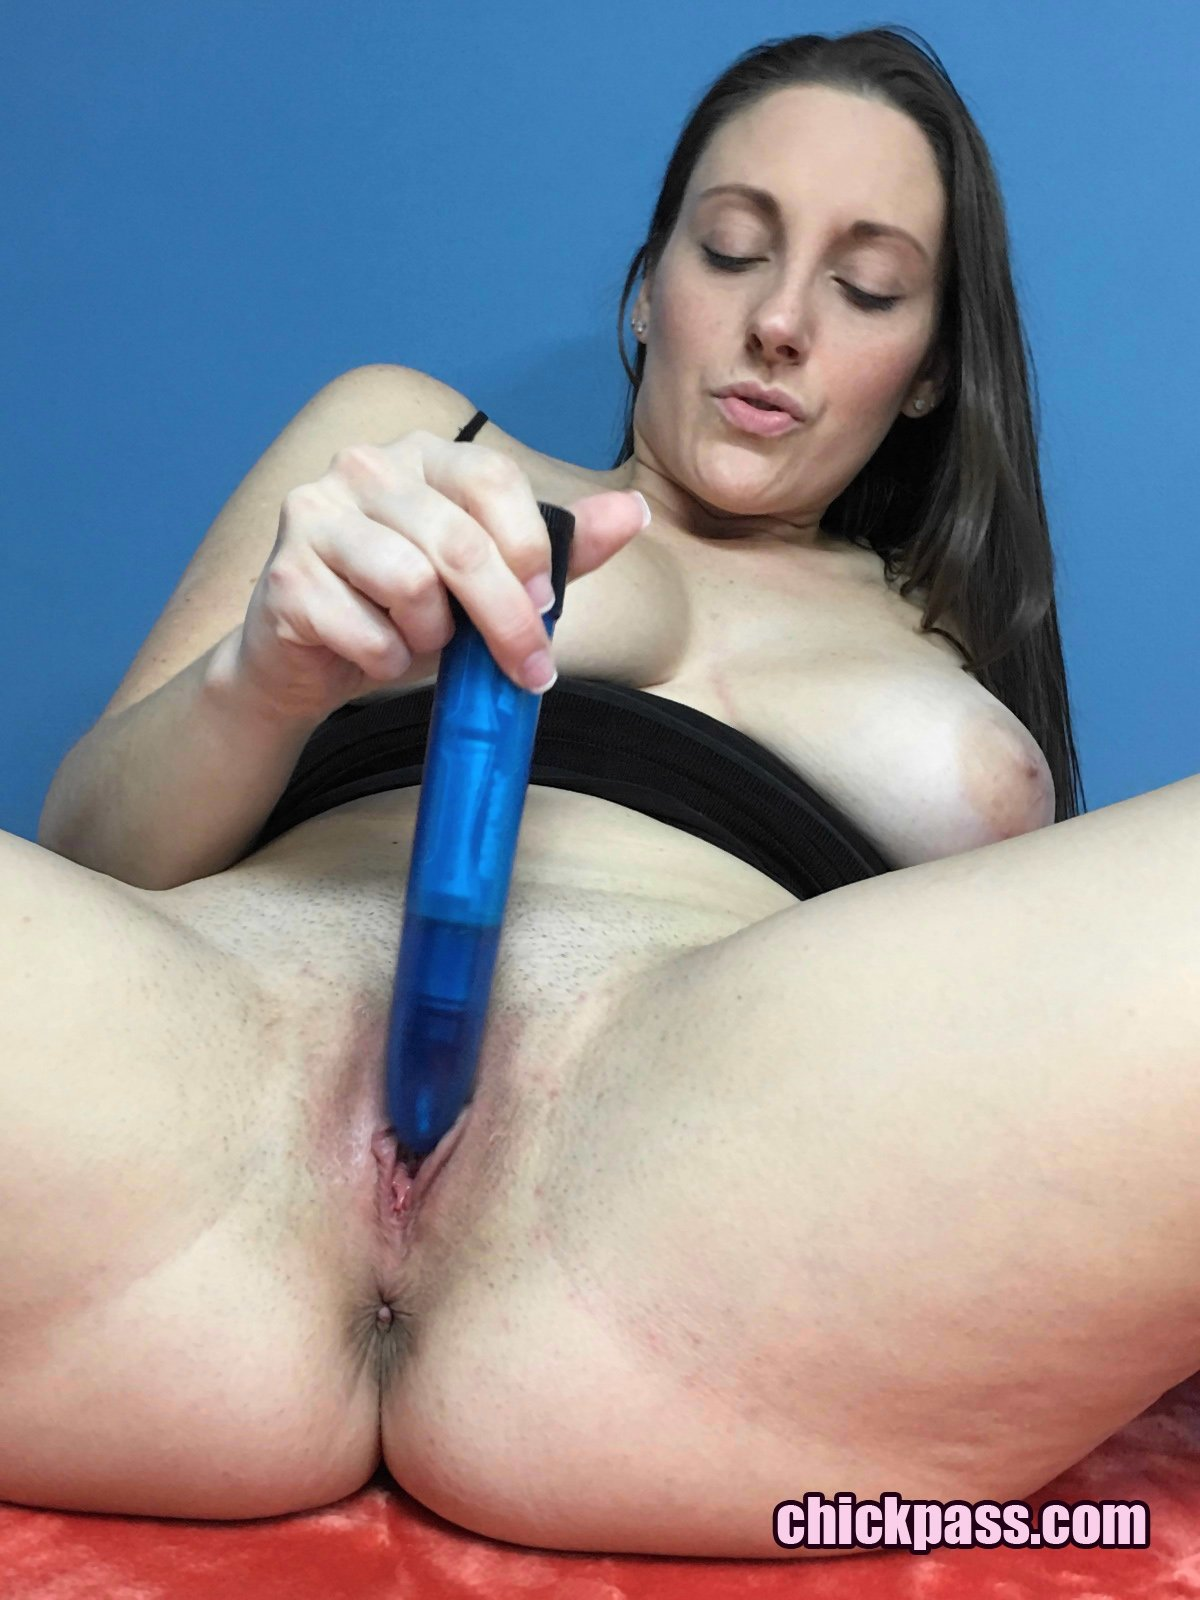 Damn playing with her dildo that